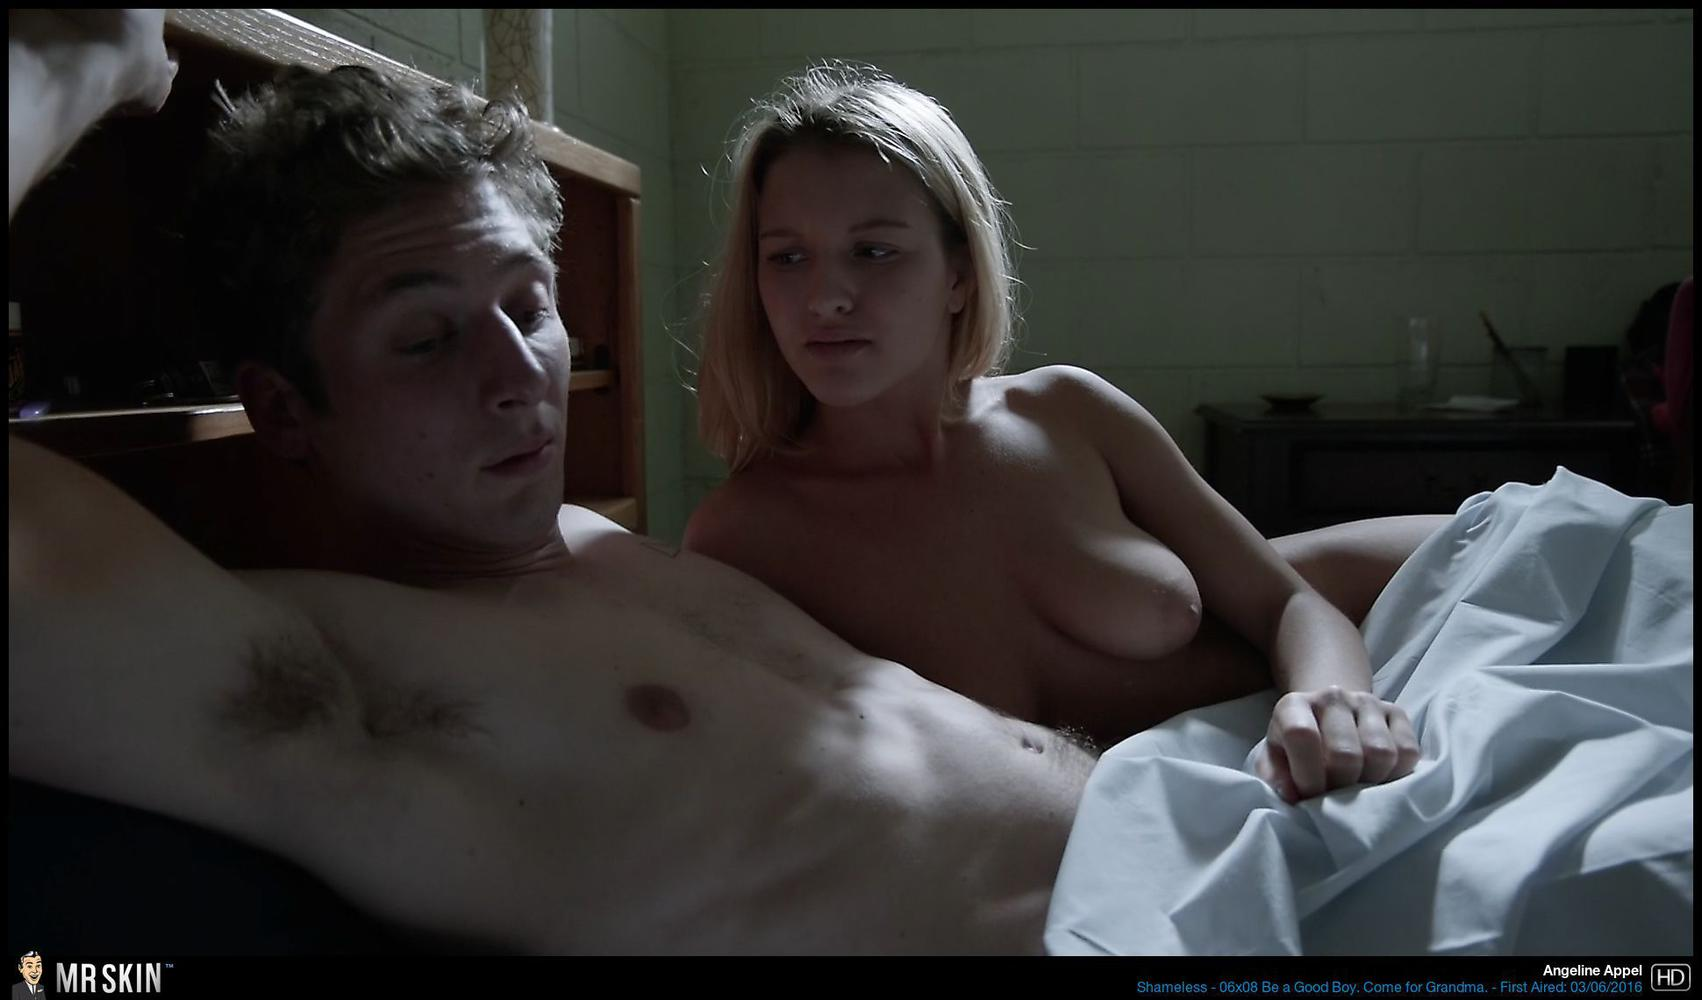 image Nudes of banshee season 1 ivana milicevic and co